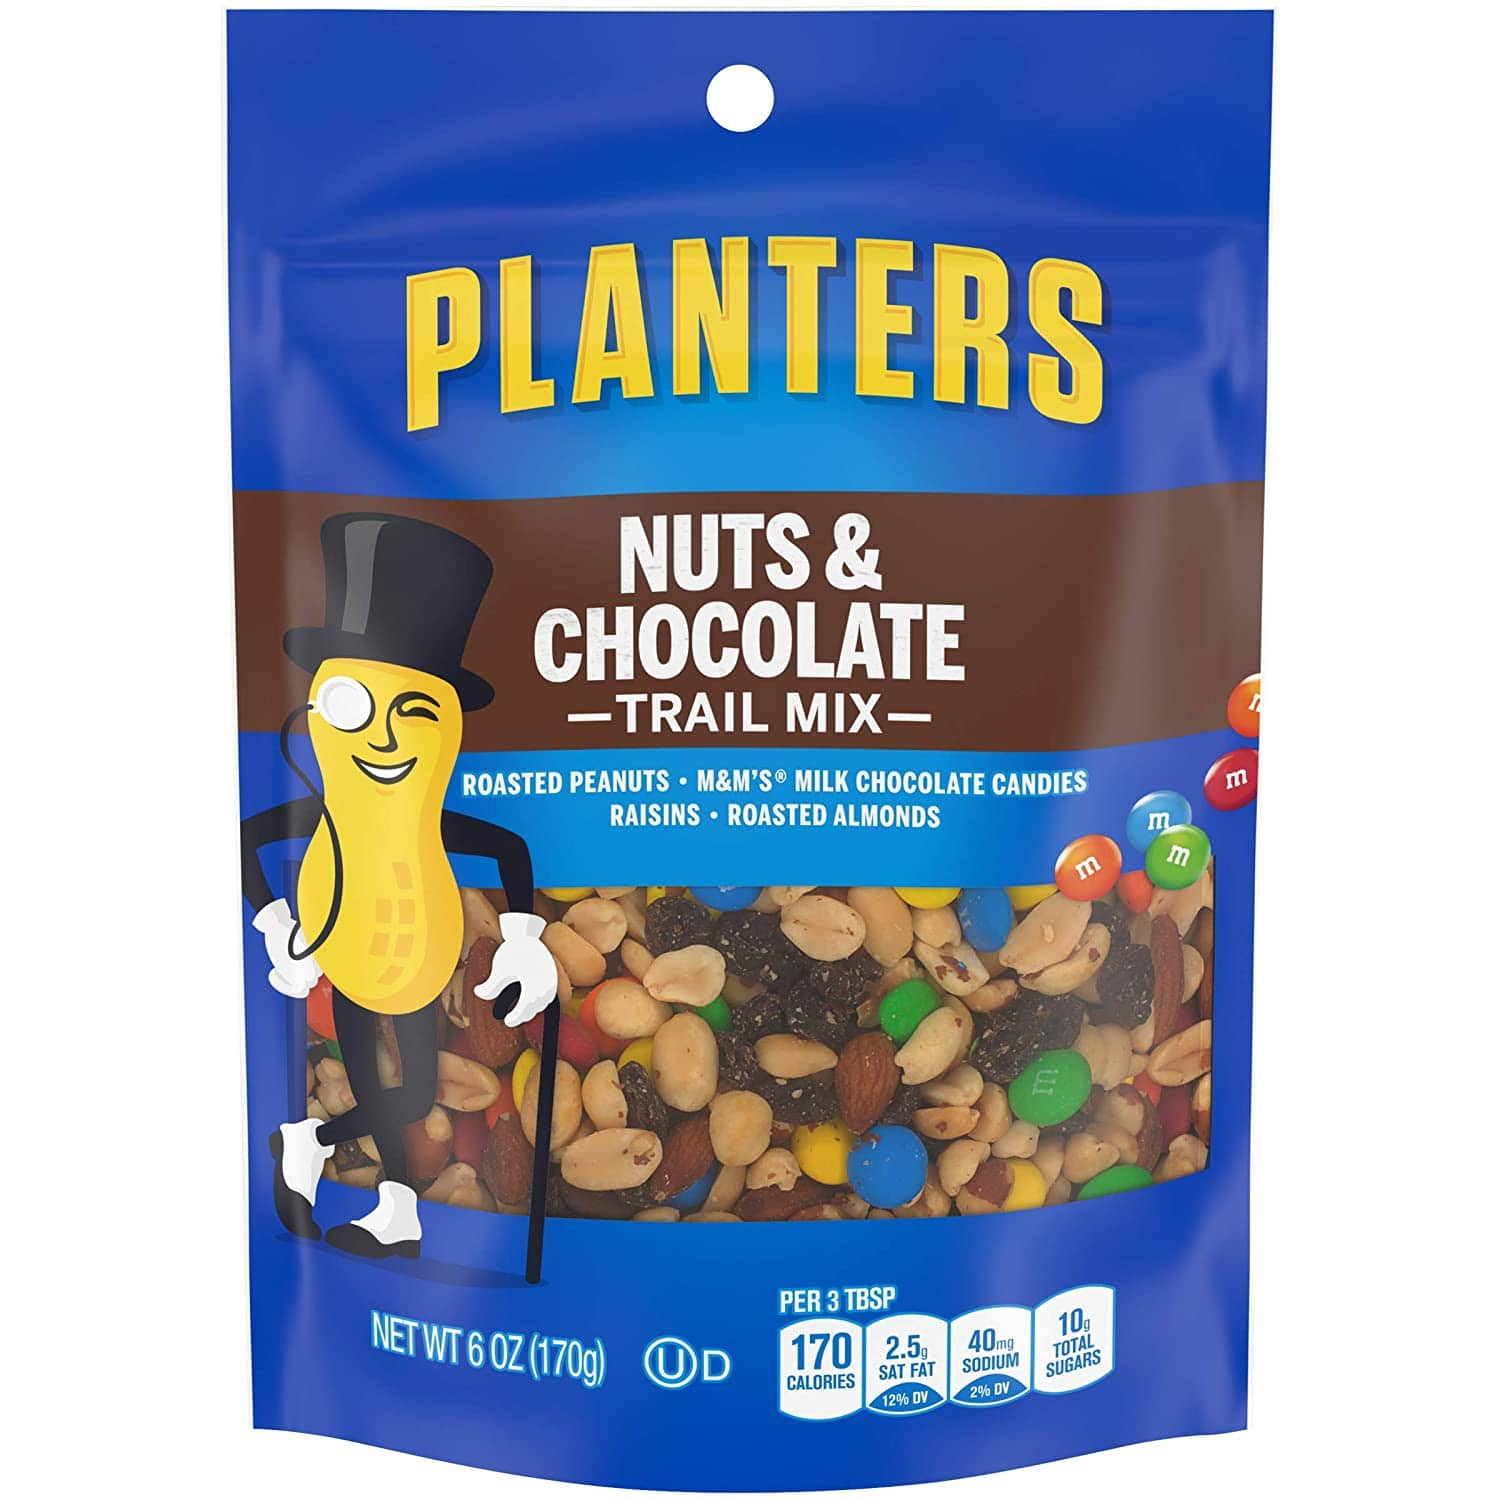 6-Oz Planters Nuts and Chocolate M&M's Trail Mix $1.90 w/ S&S + Free Shipping w/ Prime or on $25+